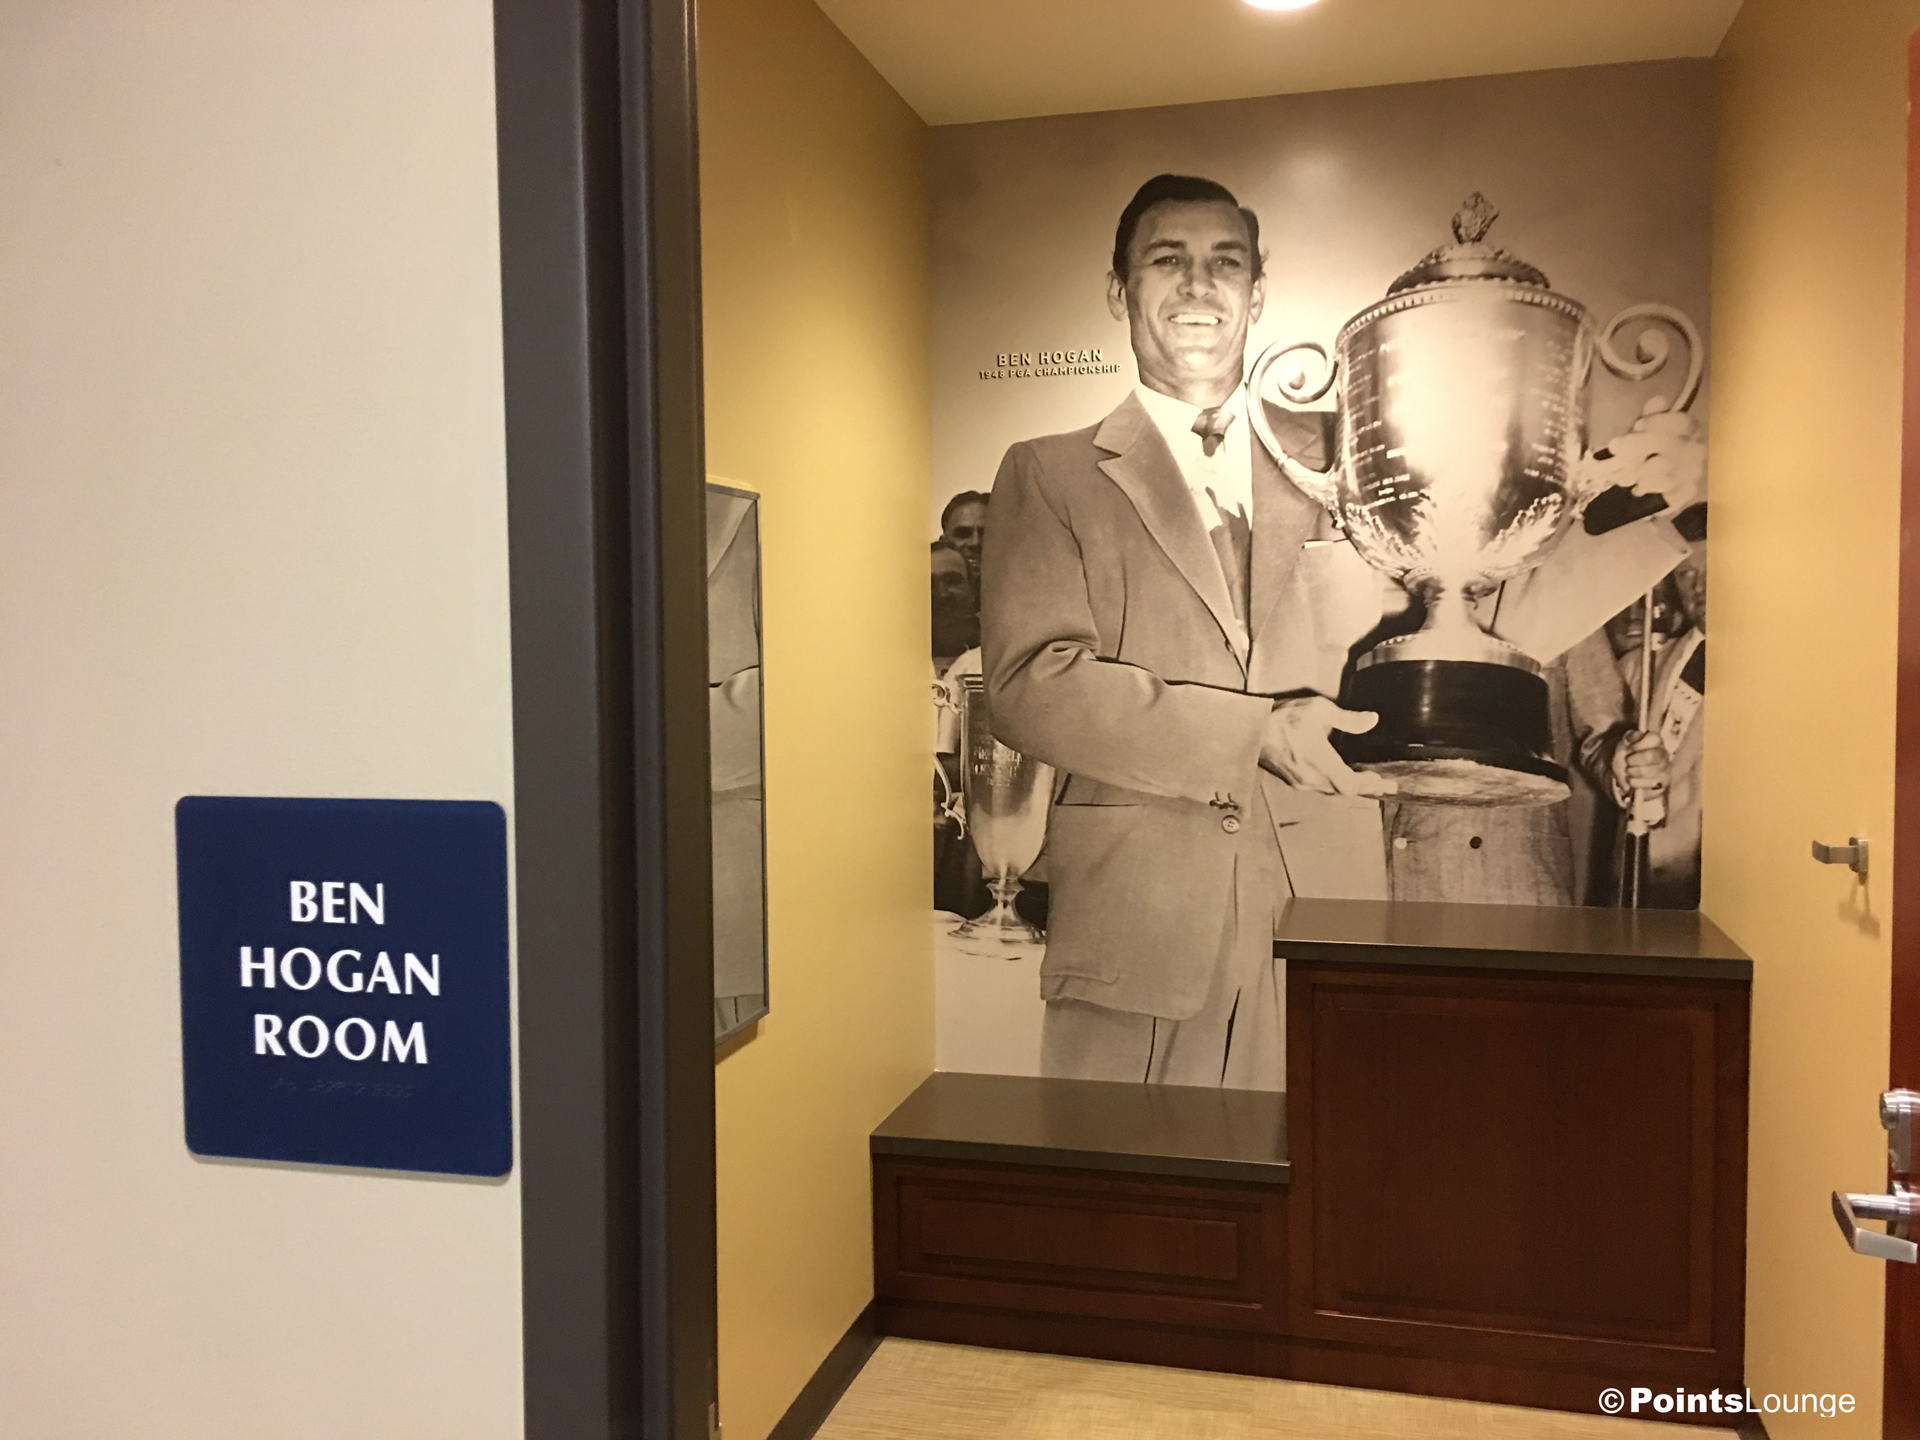 A view of the Ben Hogan Room inside the PGA MSP golf-themed airport lounge at the Minneapolis-St. Paul International Airport. One of the ways the lounge can be accessed is with Priority Pass membership. (Click for a larger image.)